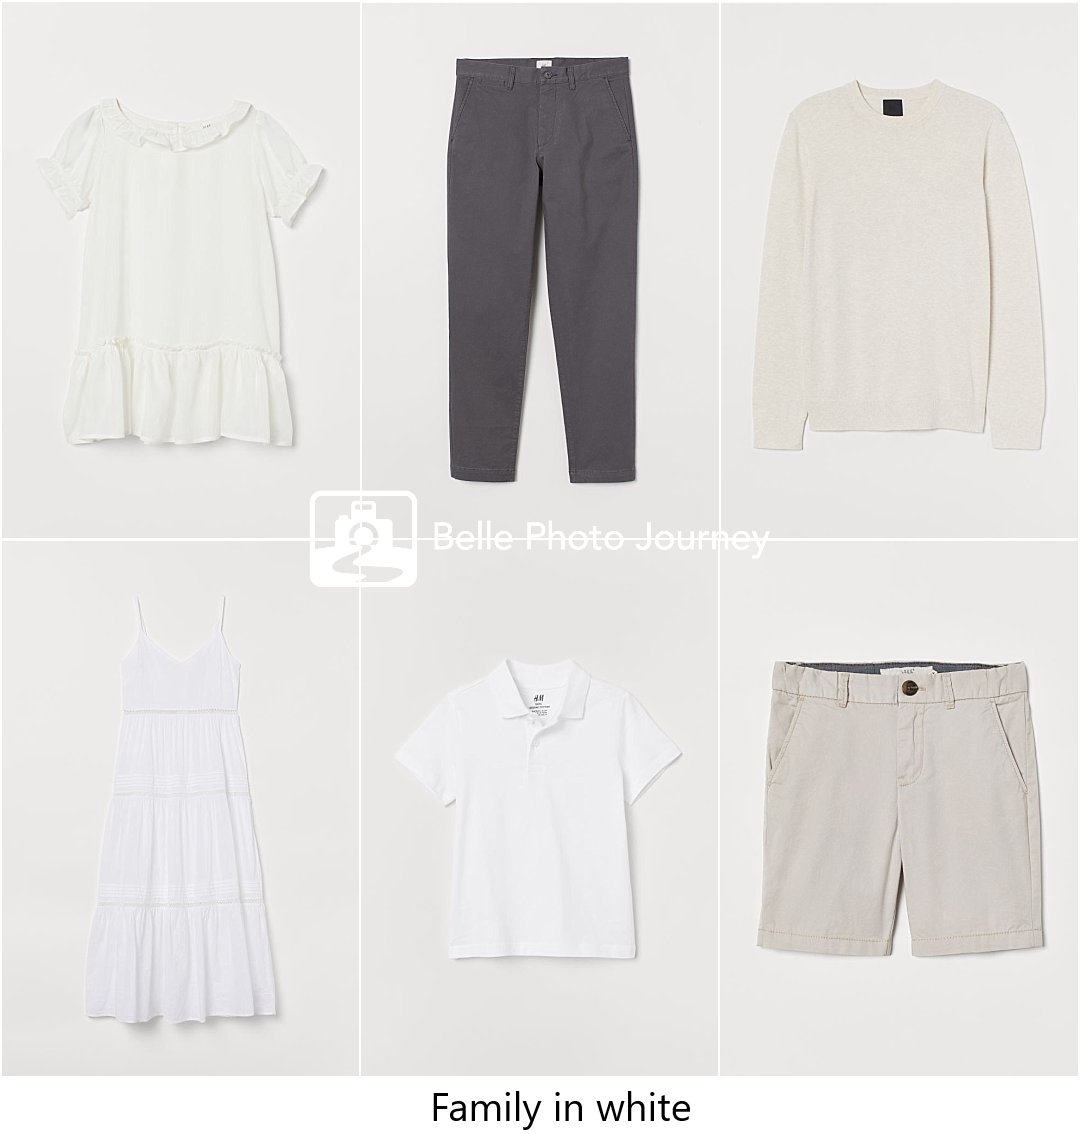 White clothes for family portraits